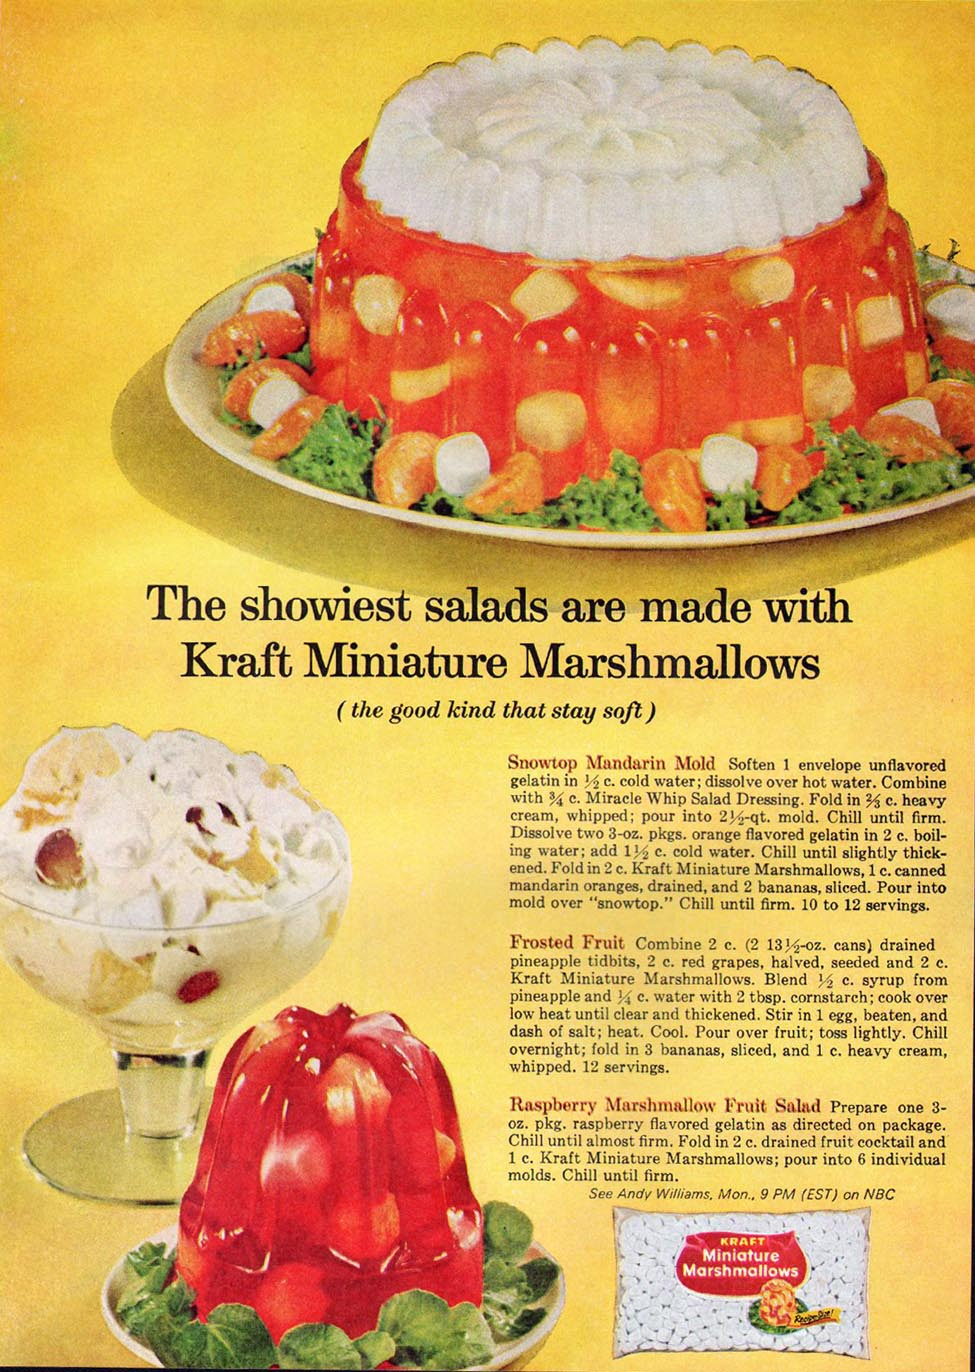 KRAFT MINIATURE MARSHMALLOWS GOOD HOUSEKEEPING 10/01/1965 p. 183